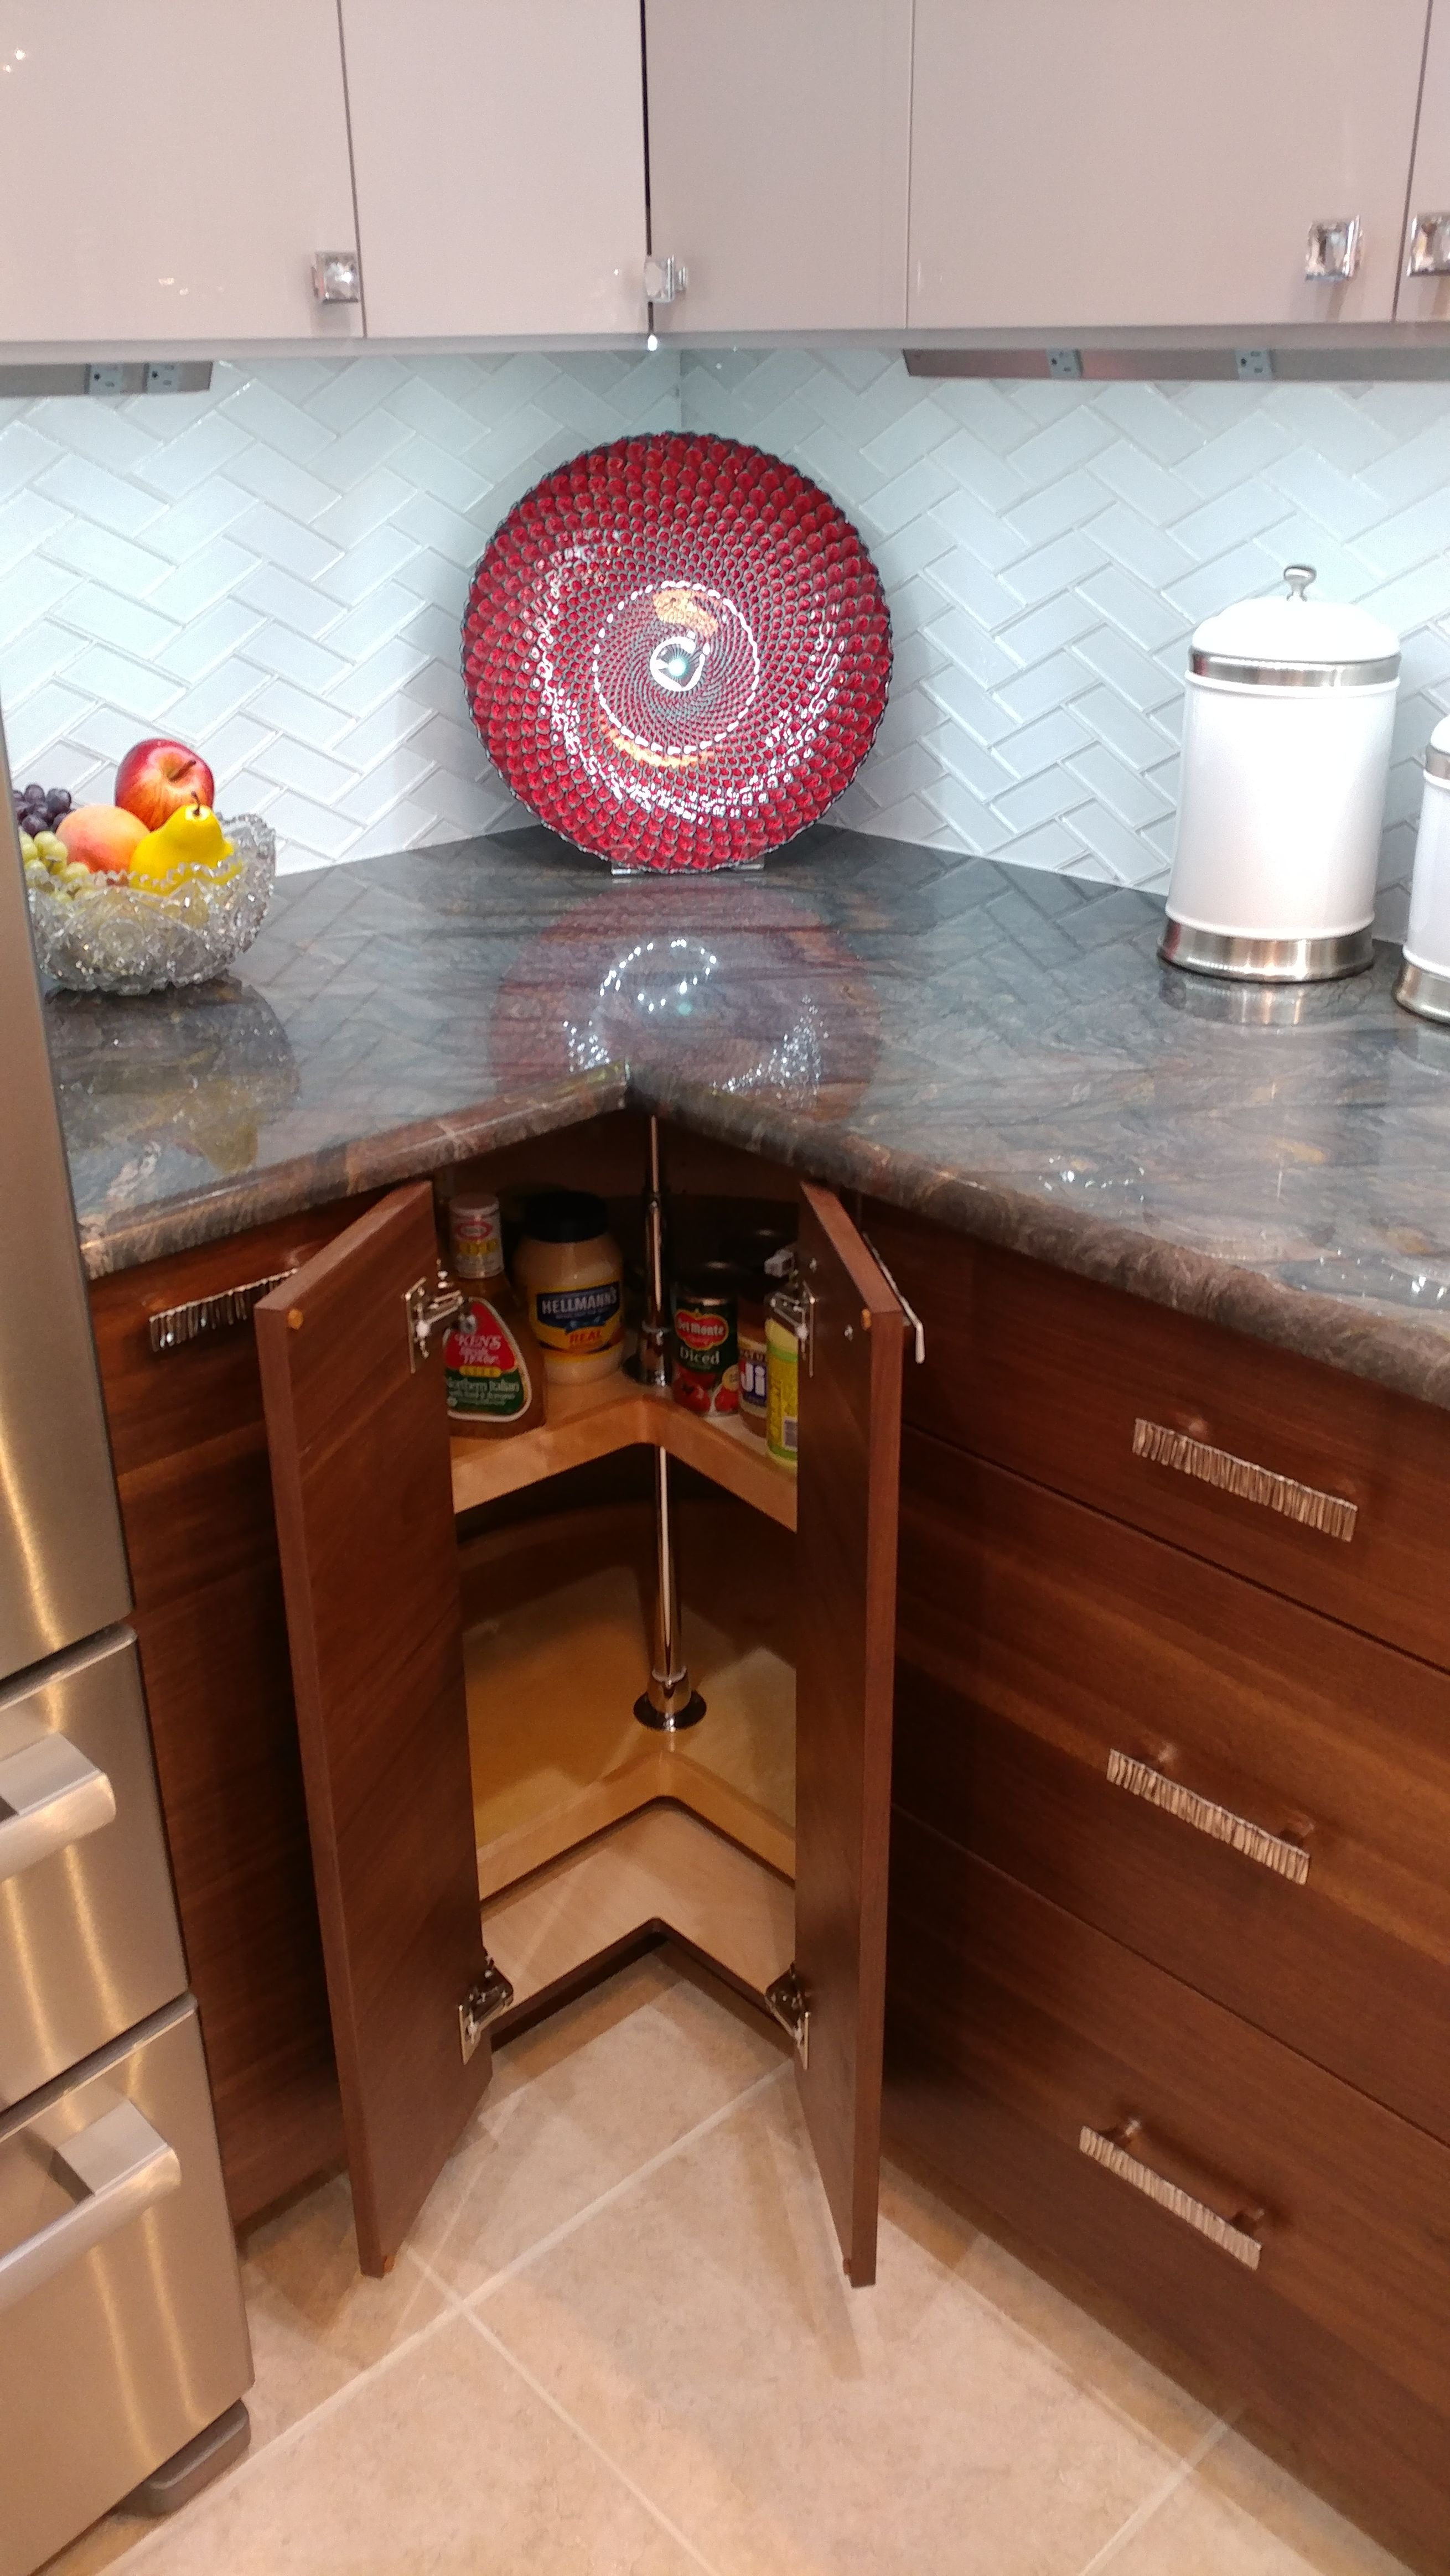 Base lazy susan with double doors. | Kitchen cabinets ...